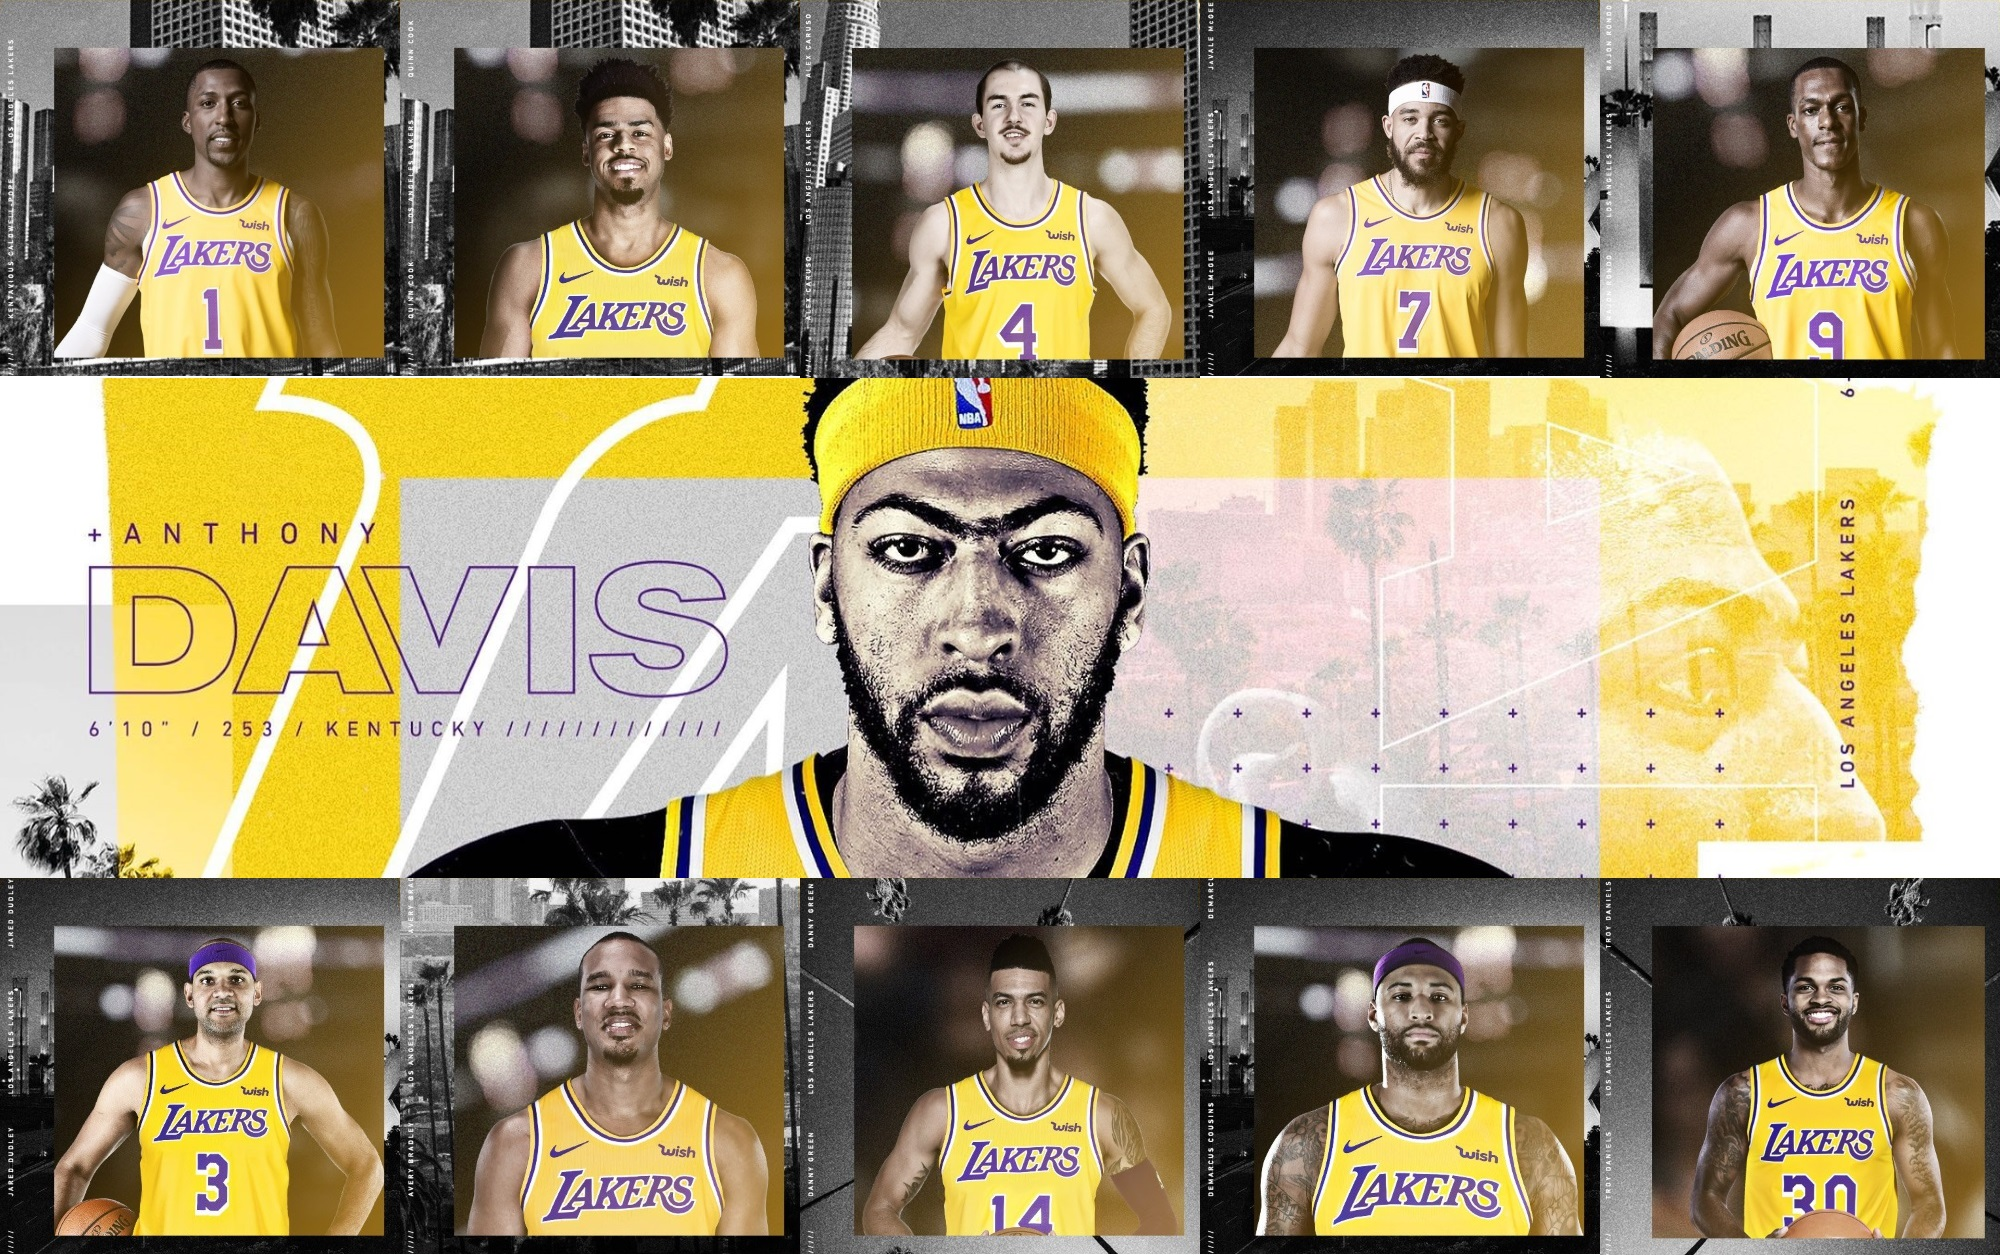 Los Angeles Lakers 2019-20 Roster